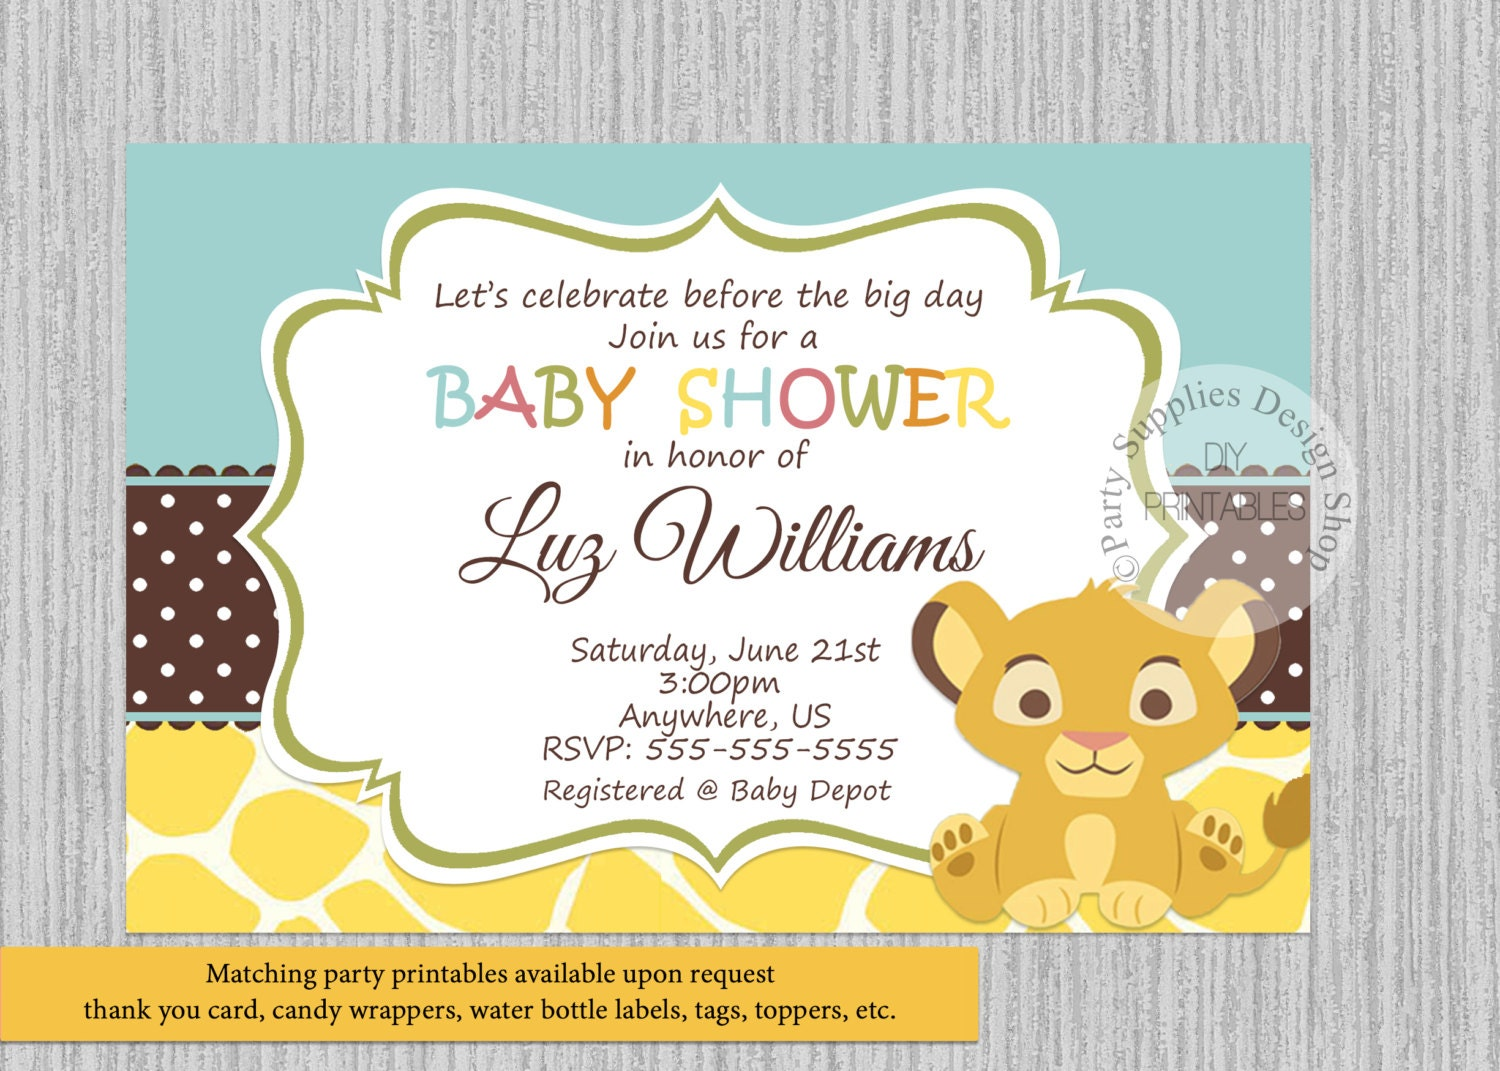 Simba lion king baby shower invitations simba baby shower description baby simba baby shower invitation filmwisefo Gallery